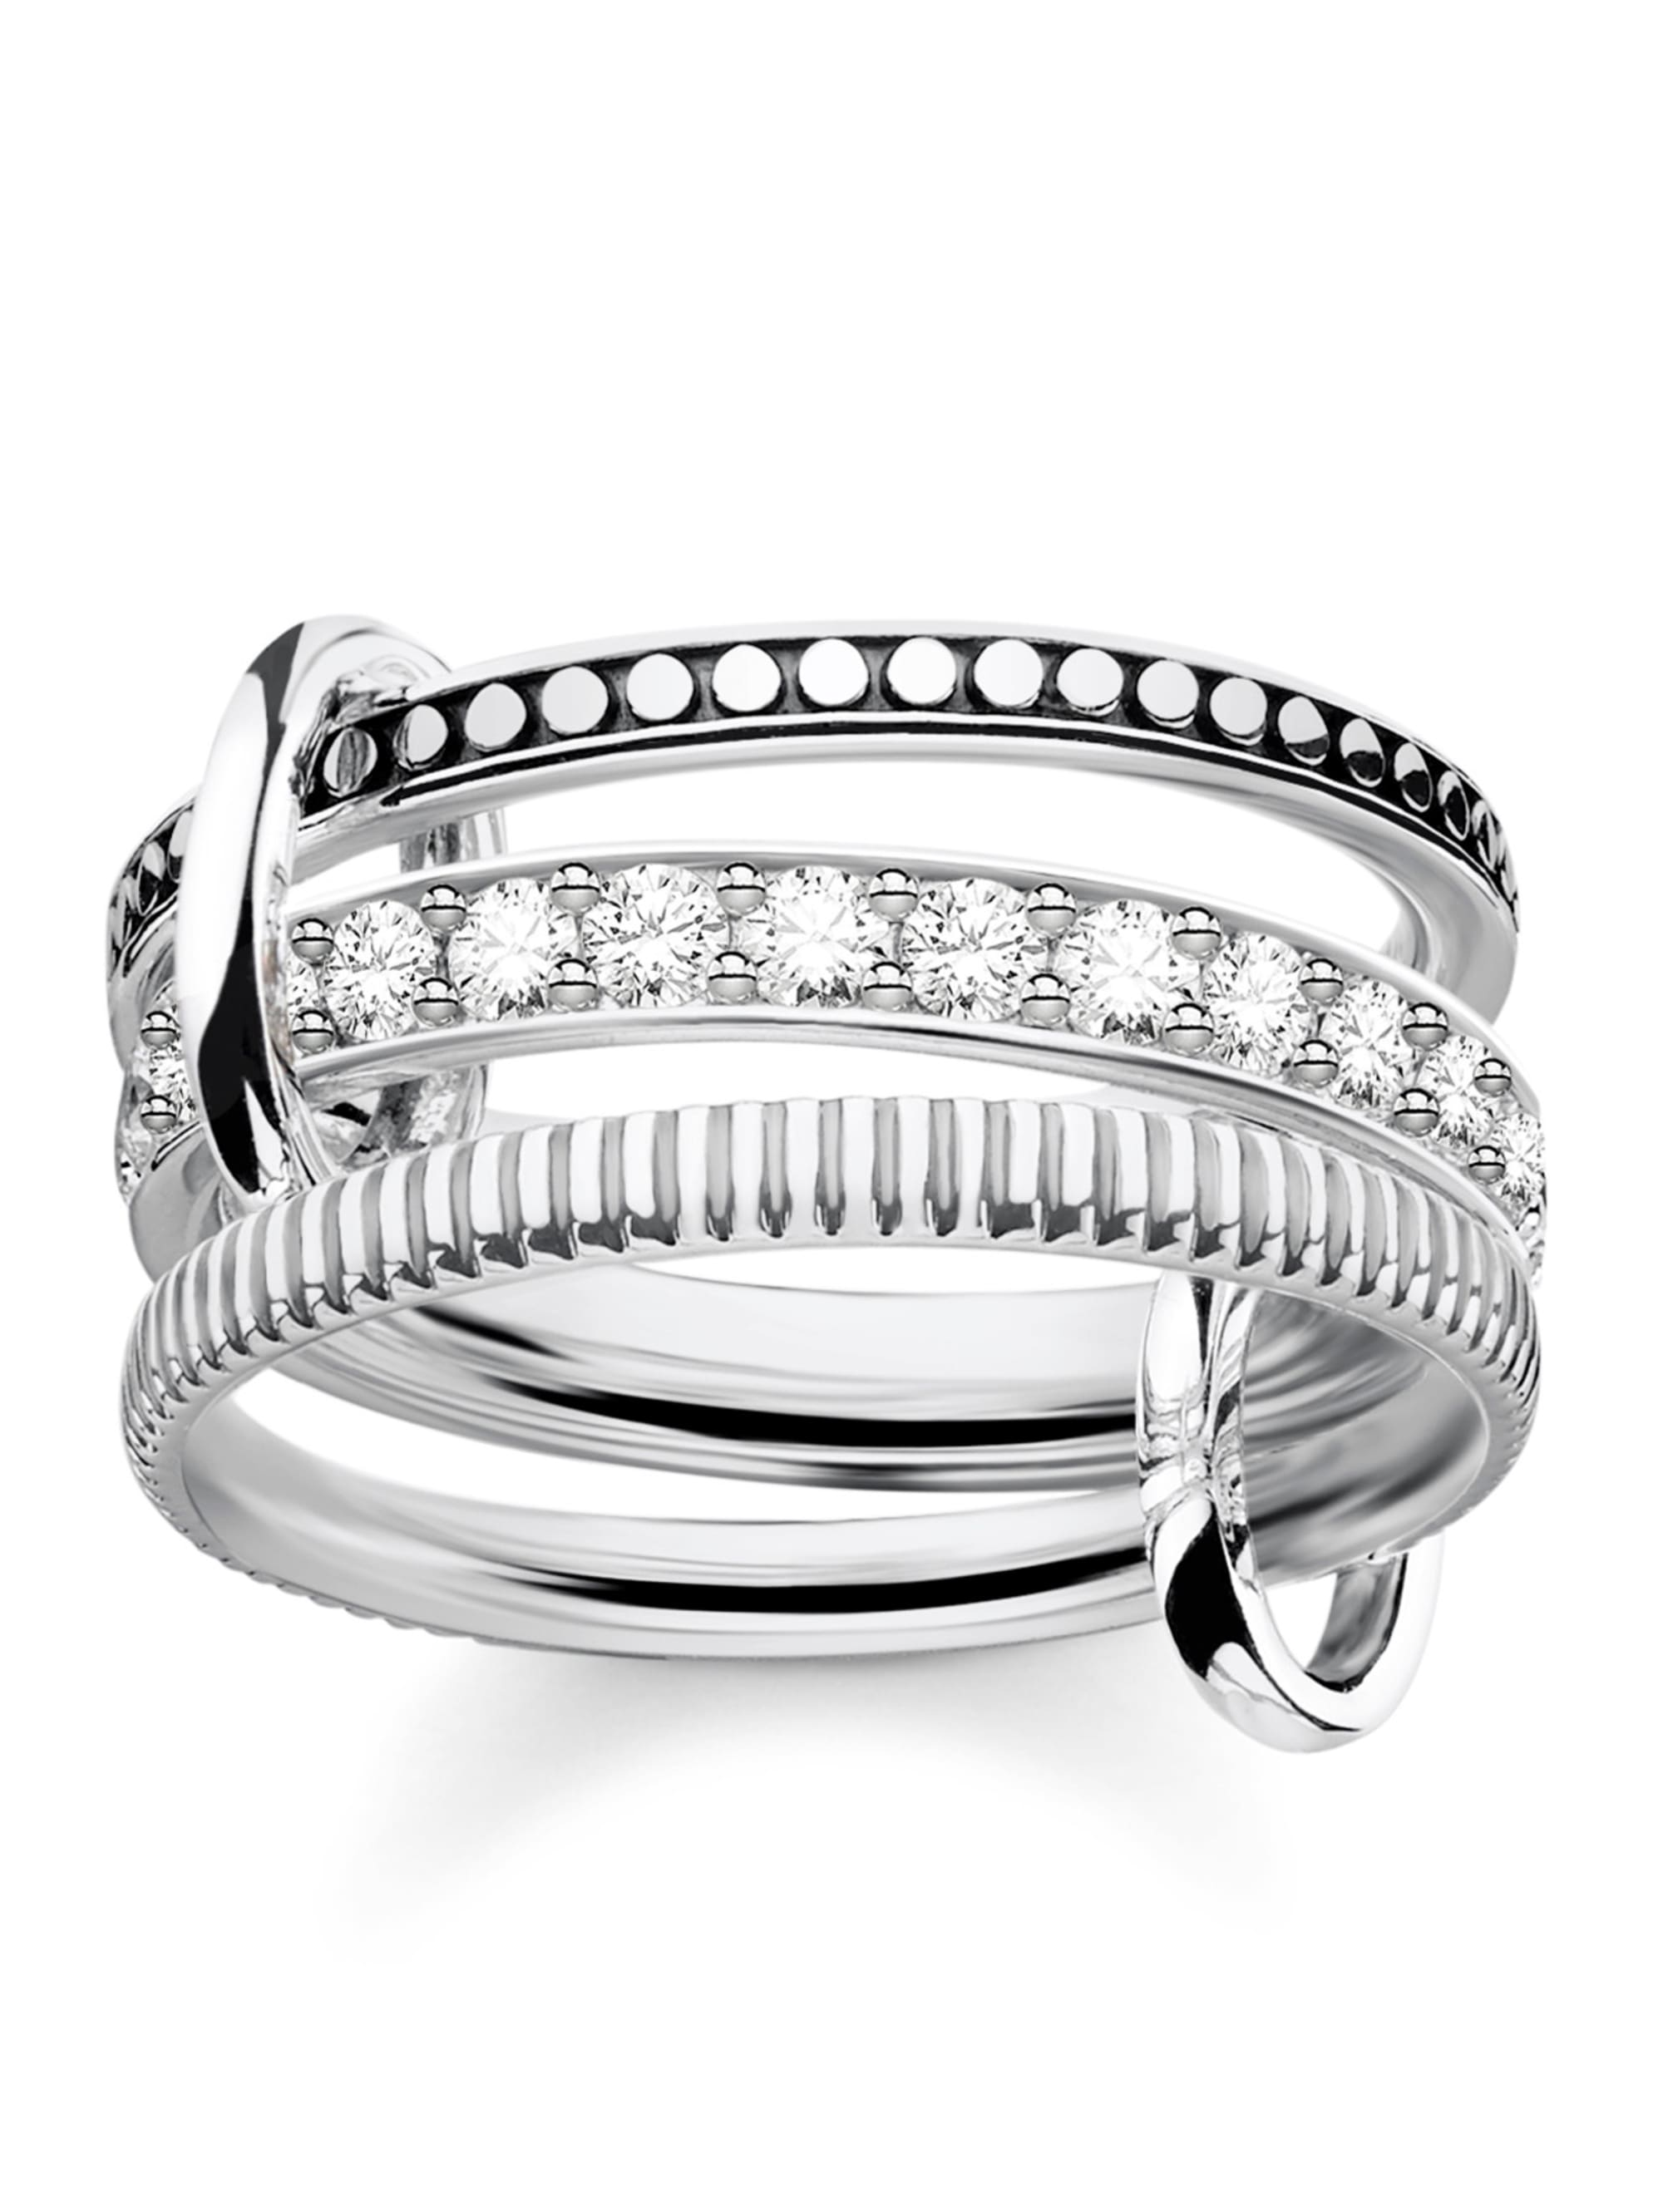 Thomas Sabo Triple Ring in Silber 925 TRIPLE RING TR2193-643-14 UezI1